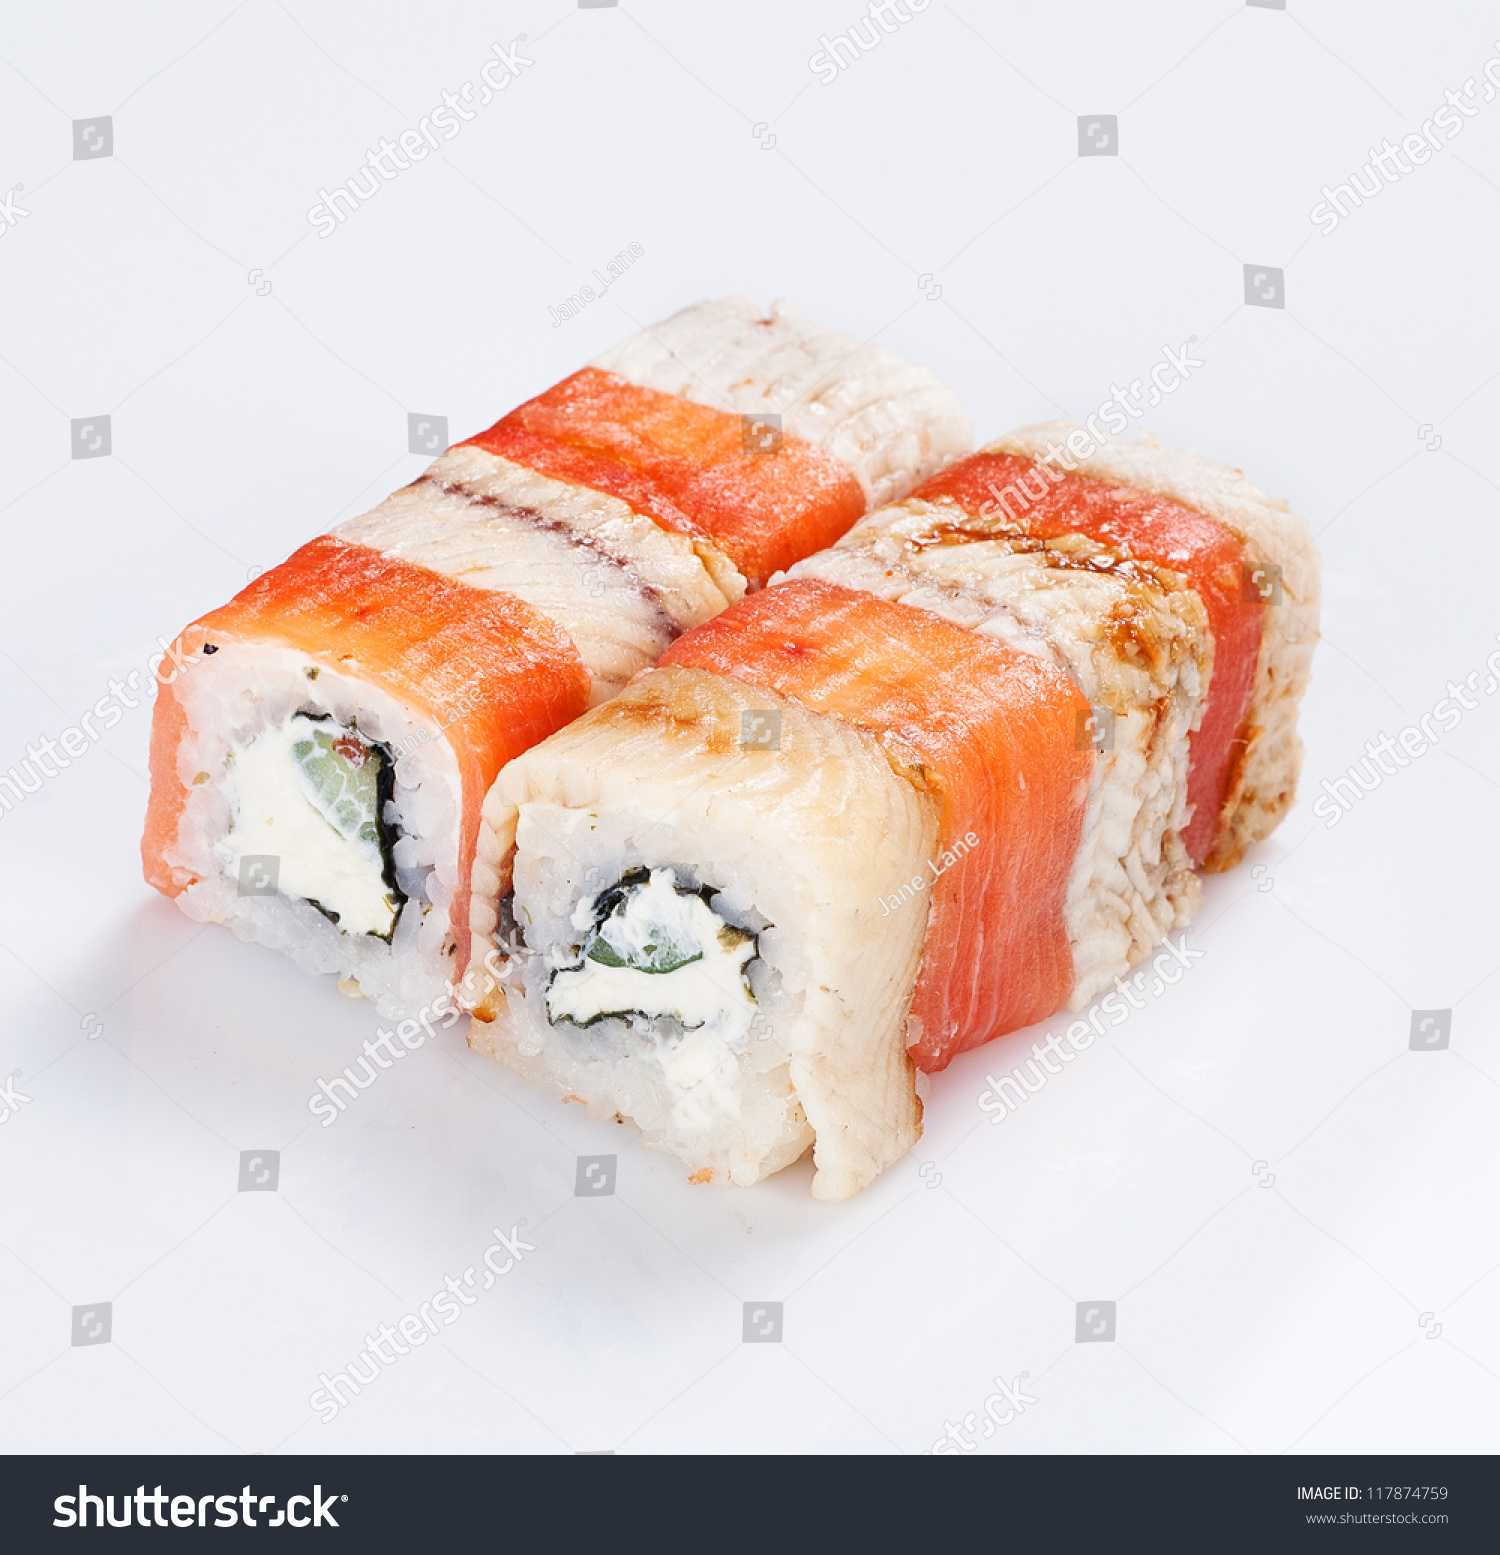 how to cook fish for sushi rolls